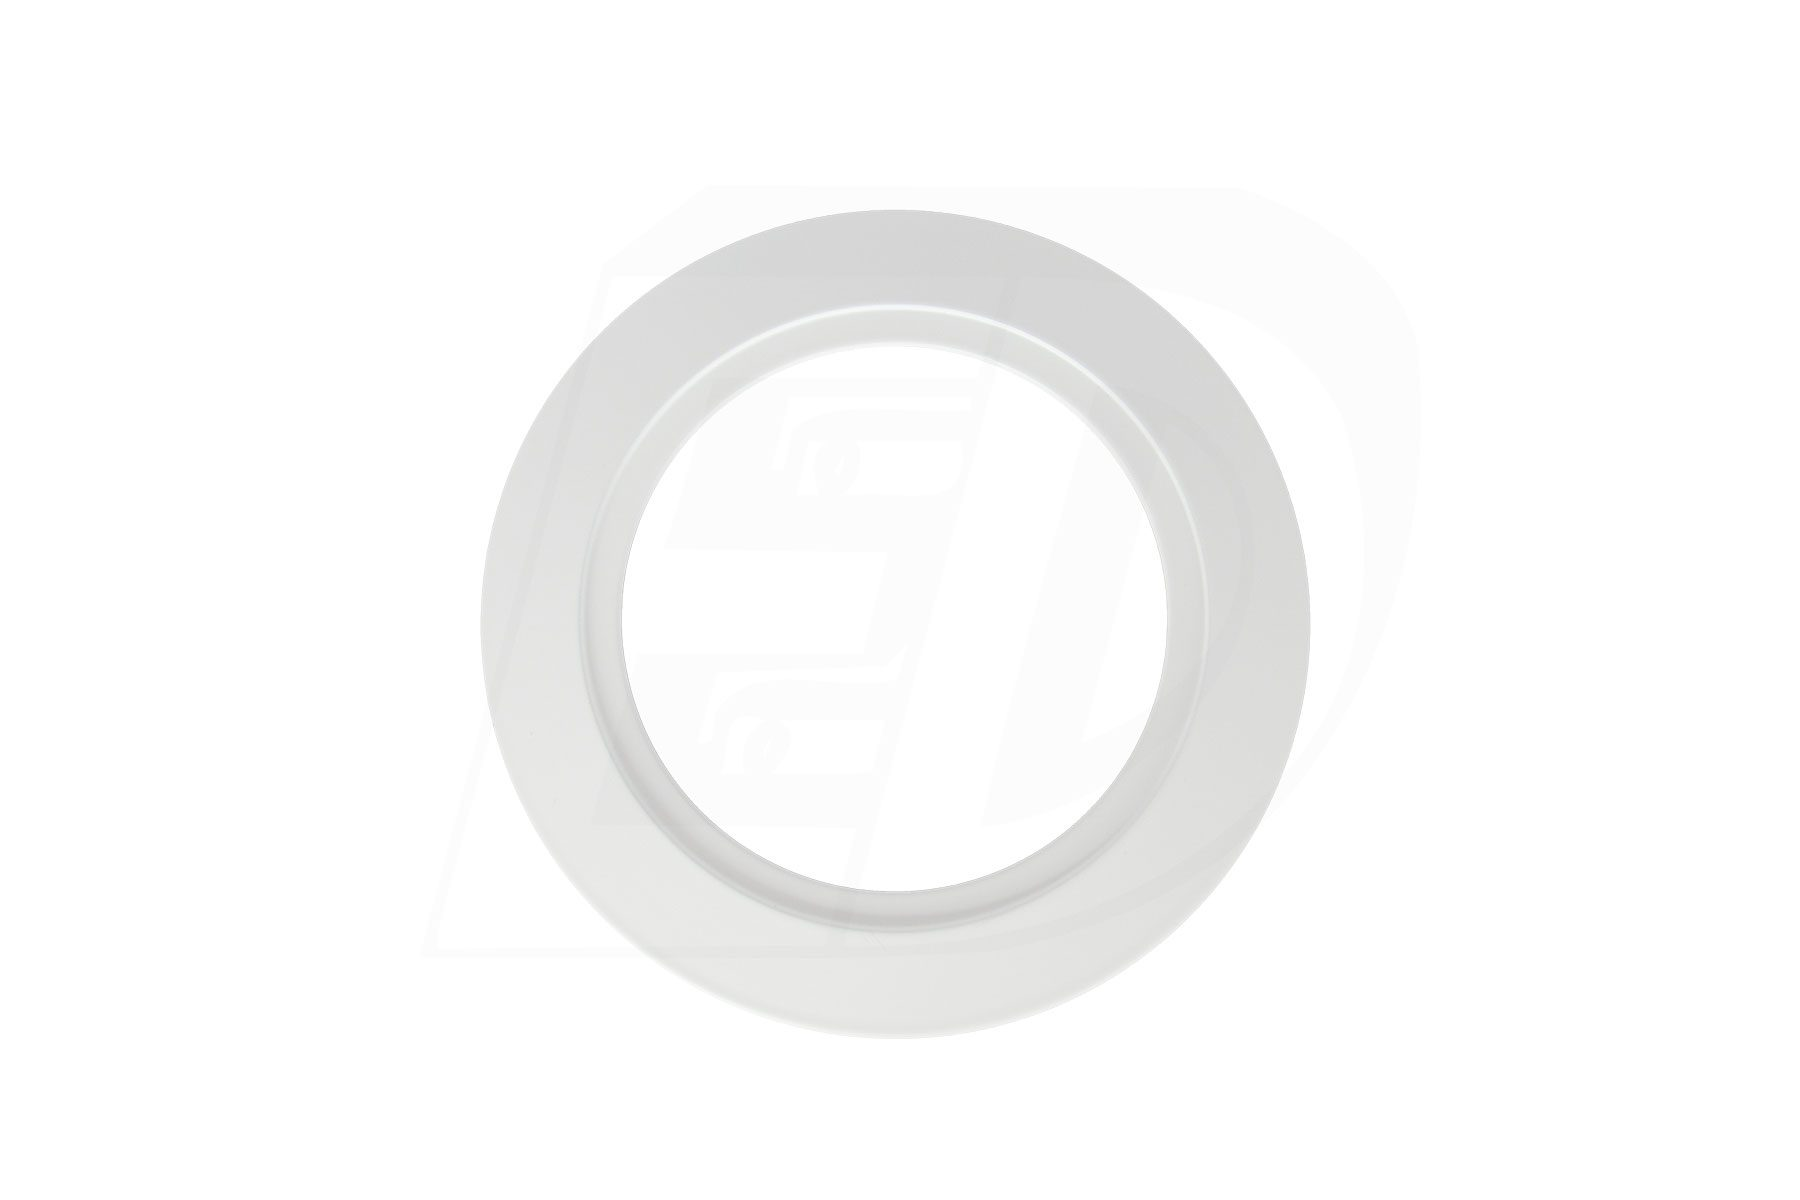 """White Goof Ring Overall Diameter 4 1/2"""" for DLSGR 3 Inch. Round Integrated LED Gimbal Recessed Light"""